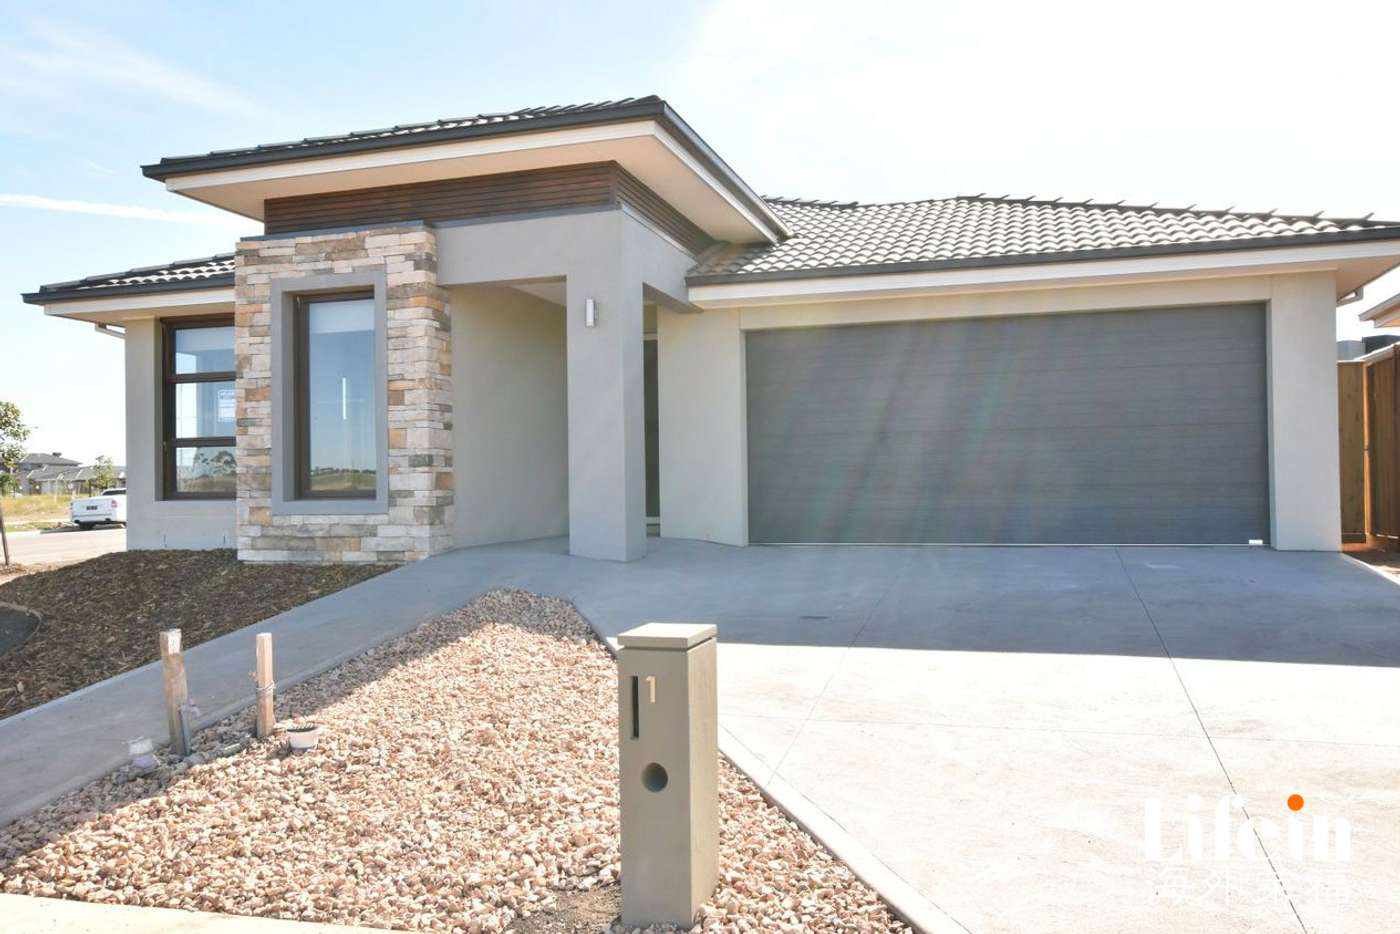 Main view of Homely house listing, 1 Steamer Street, Tarneit VIC 3029